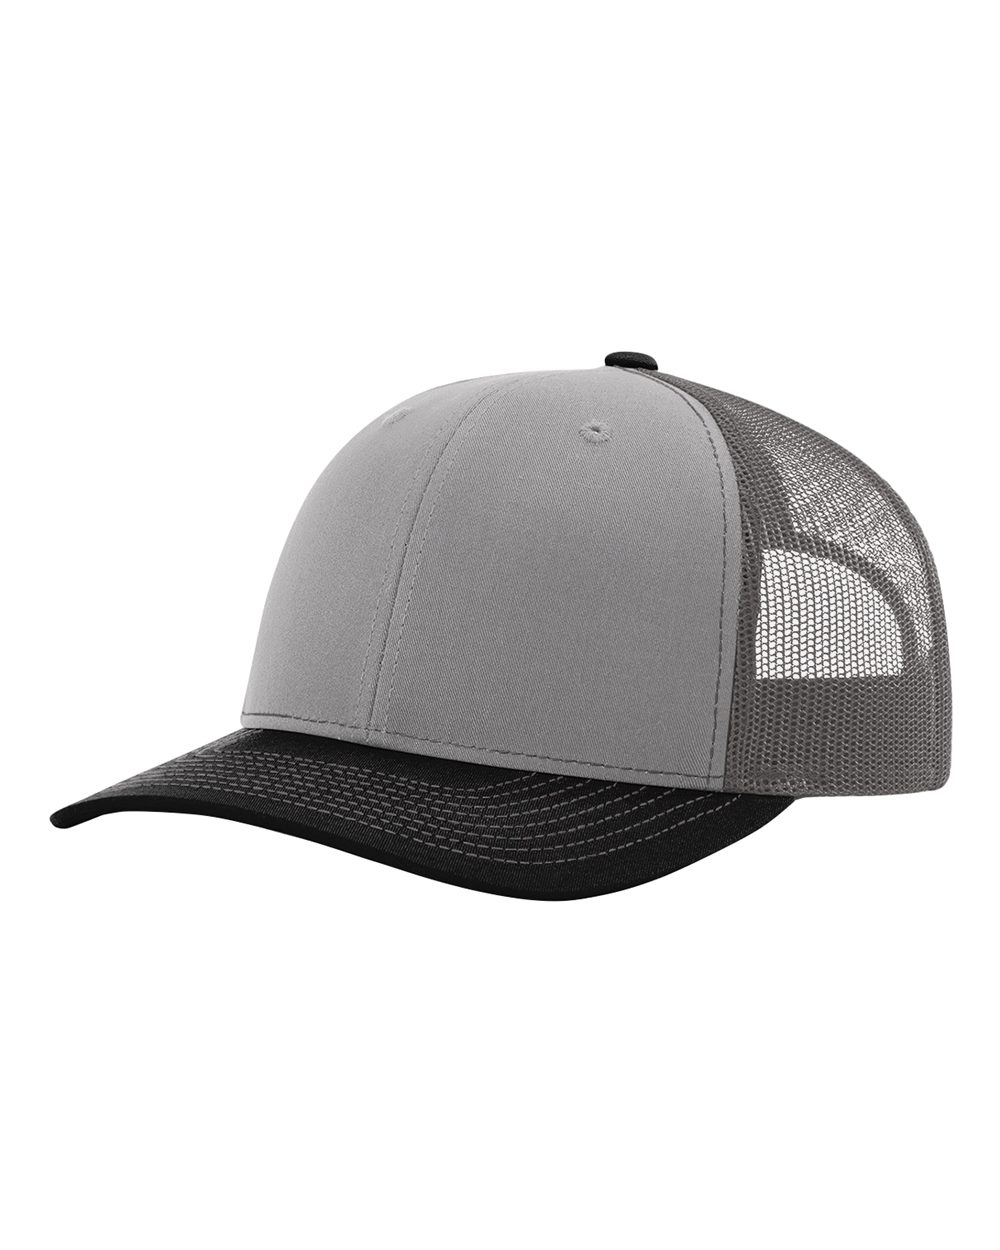 click to view Gray/ Charcoal/ Black